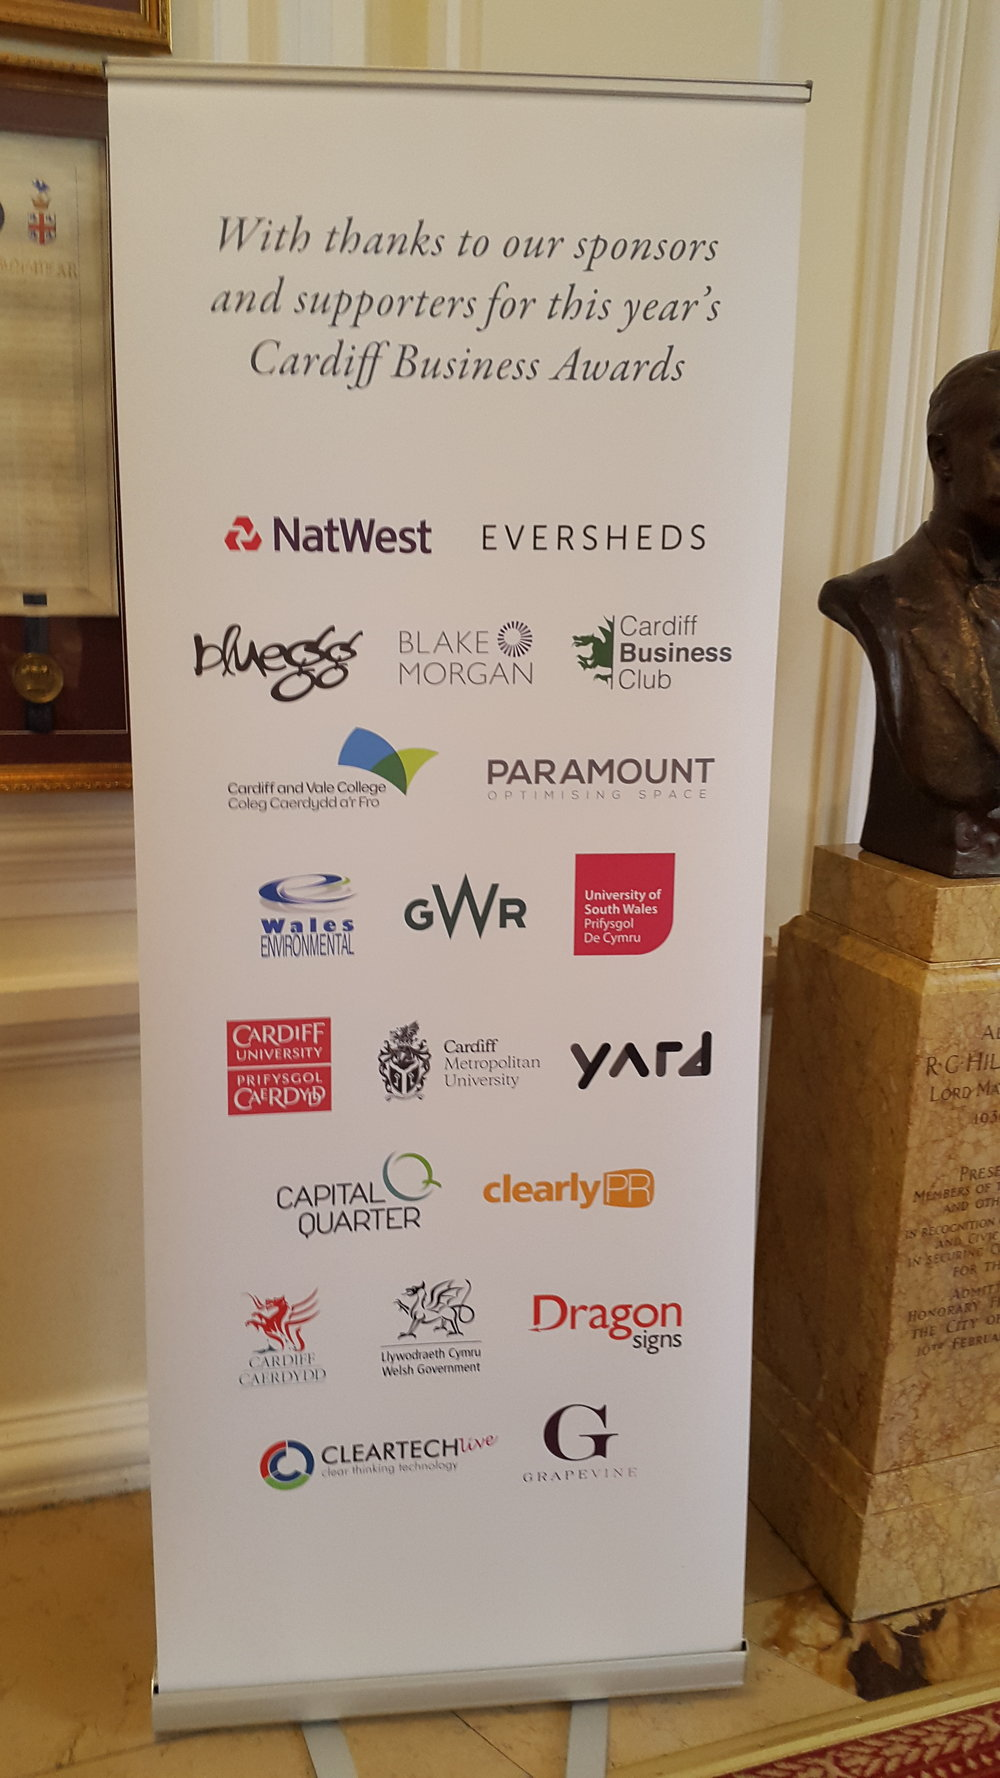 Cardiff Business Awards Sponsors